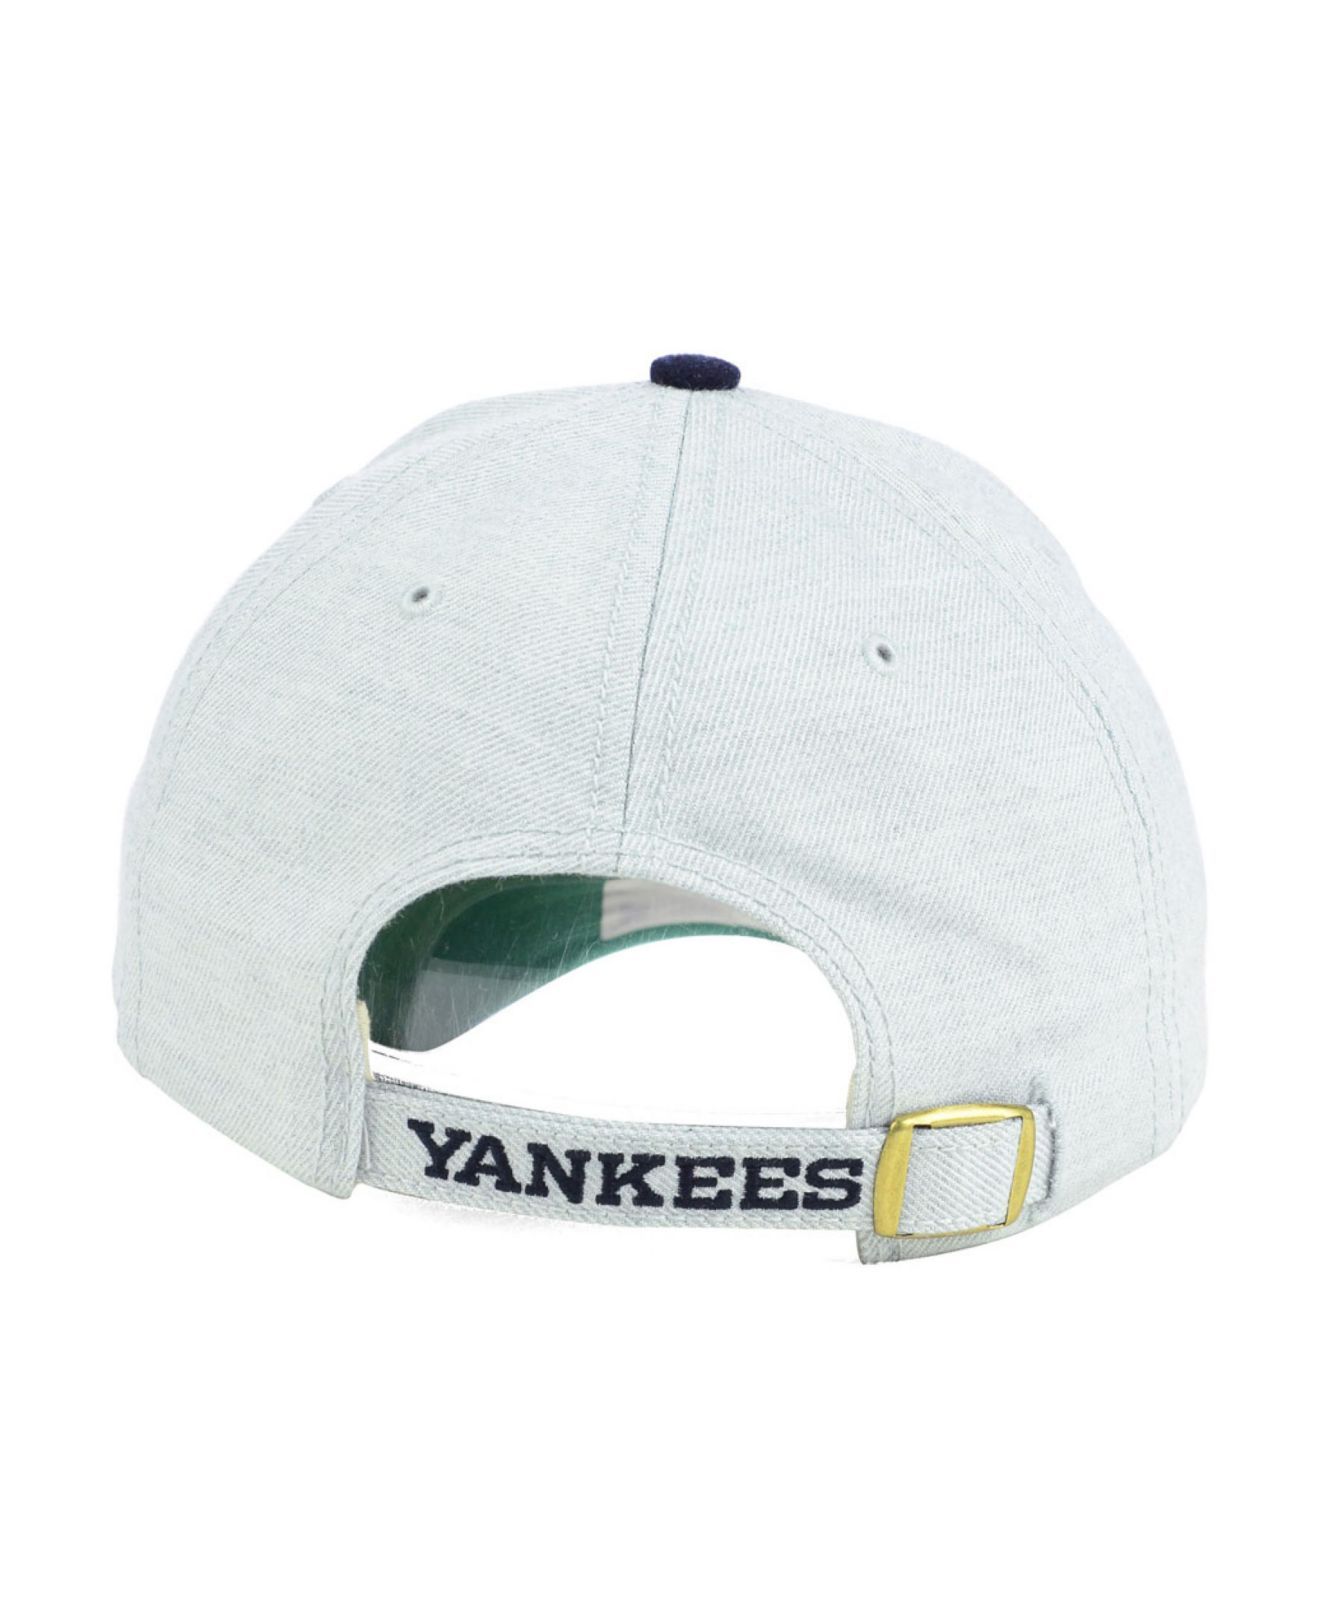 Lyst - 47 Brand New York Yankees Munson Mvp Cap in Gray for Men be162fc573e